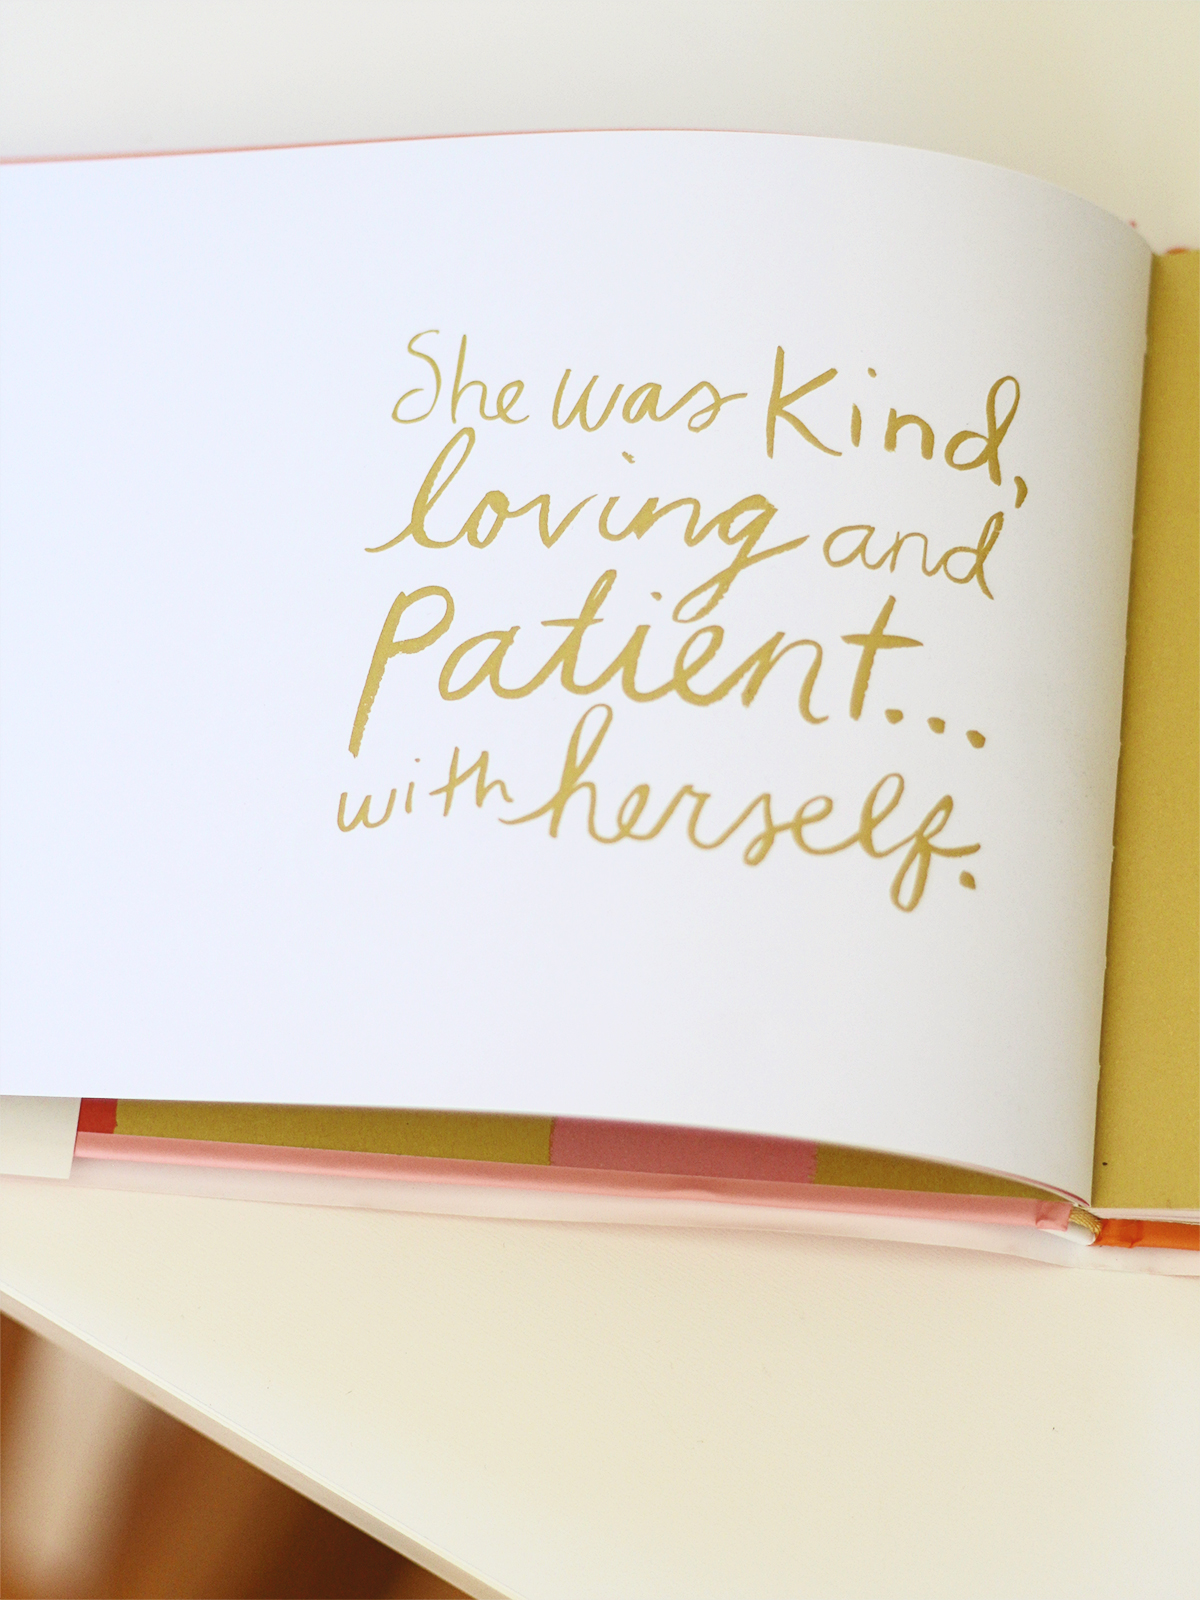 It's time to be kind, loving & patient with ourselves.